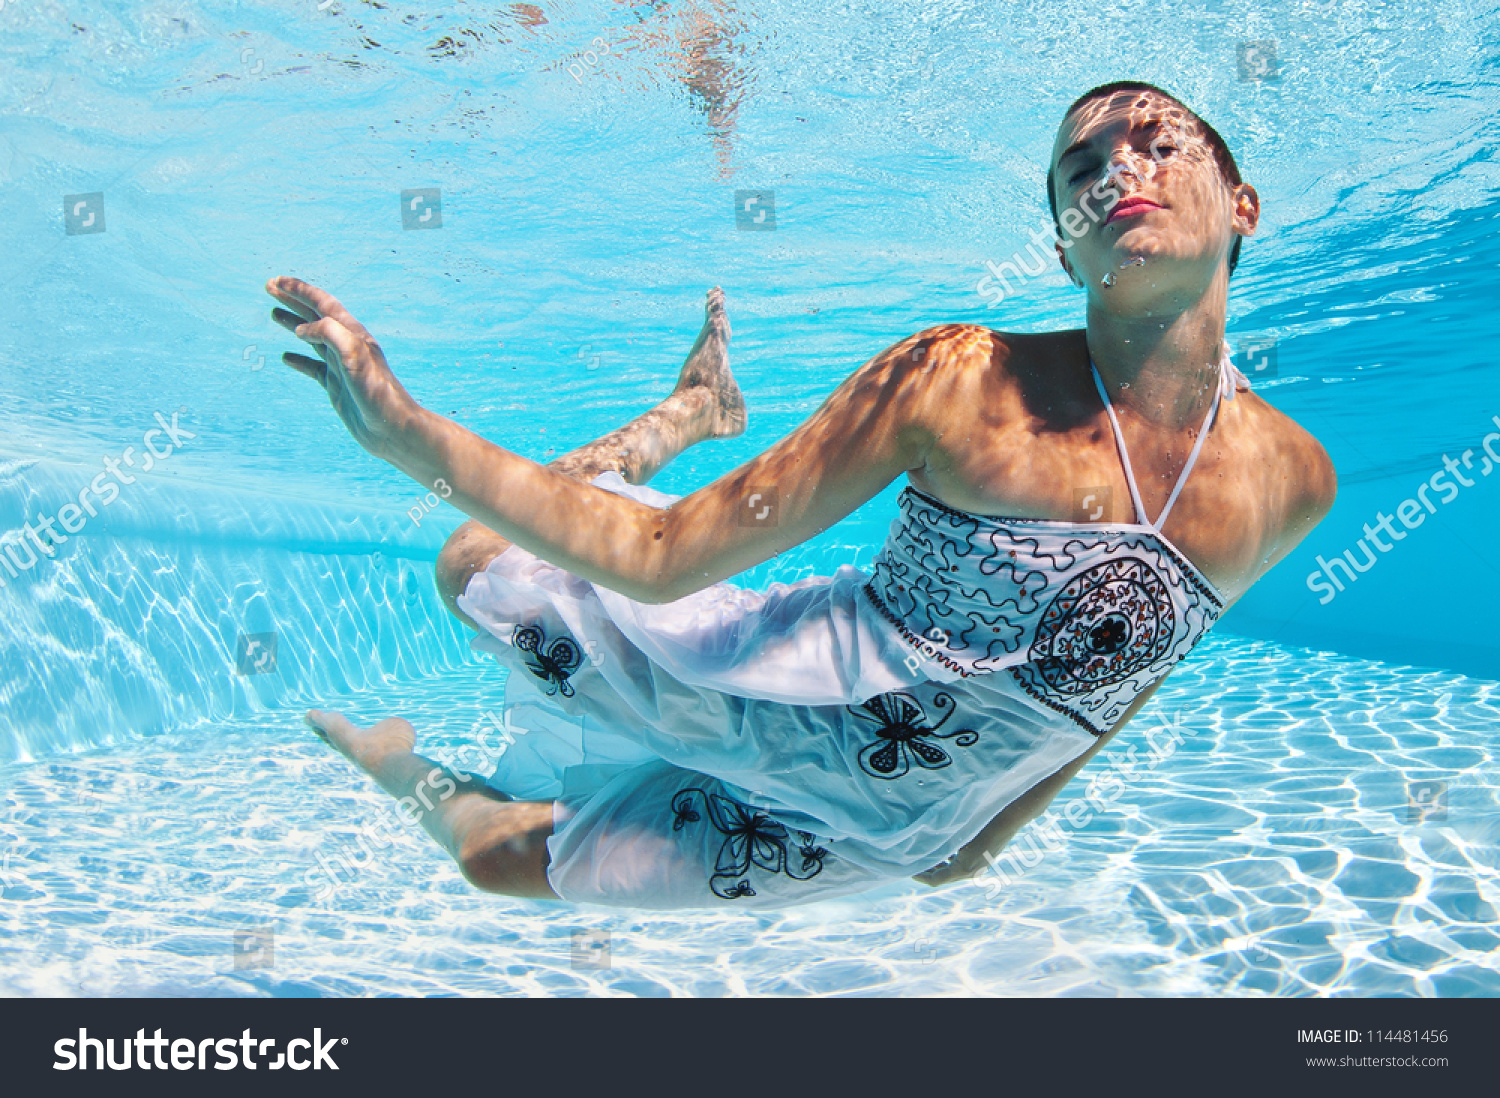 Underwater woman fashion portrait white dress stock photo 114481456 shutterstock for Female only swimming pool london